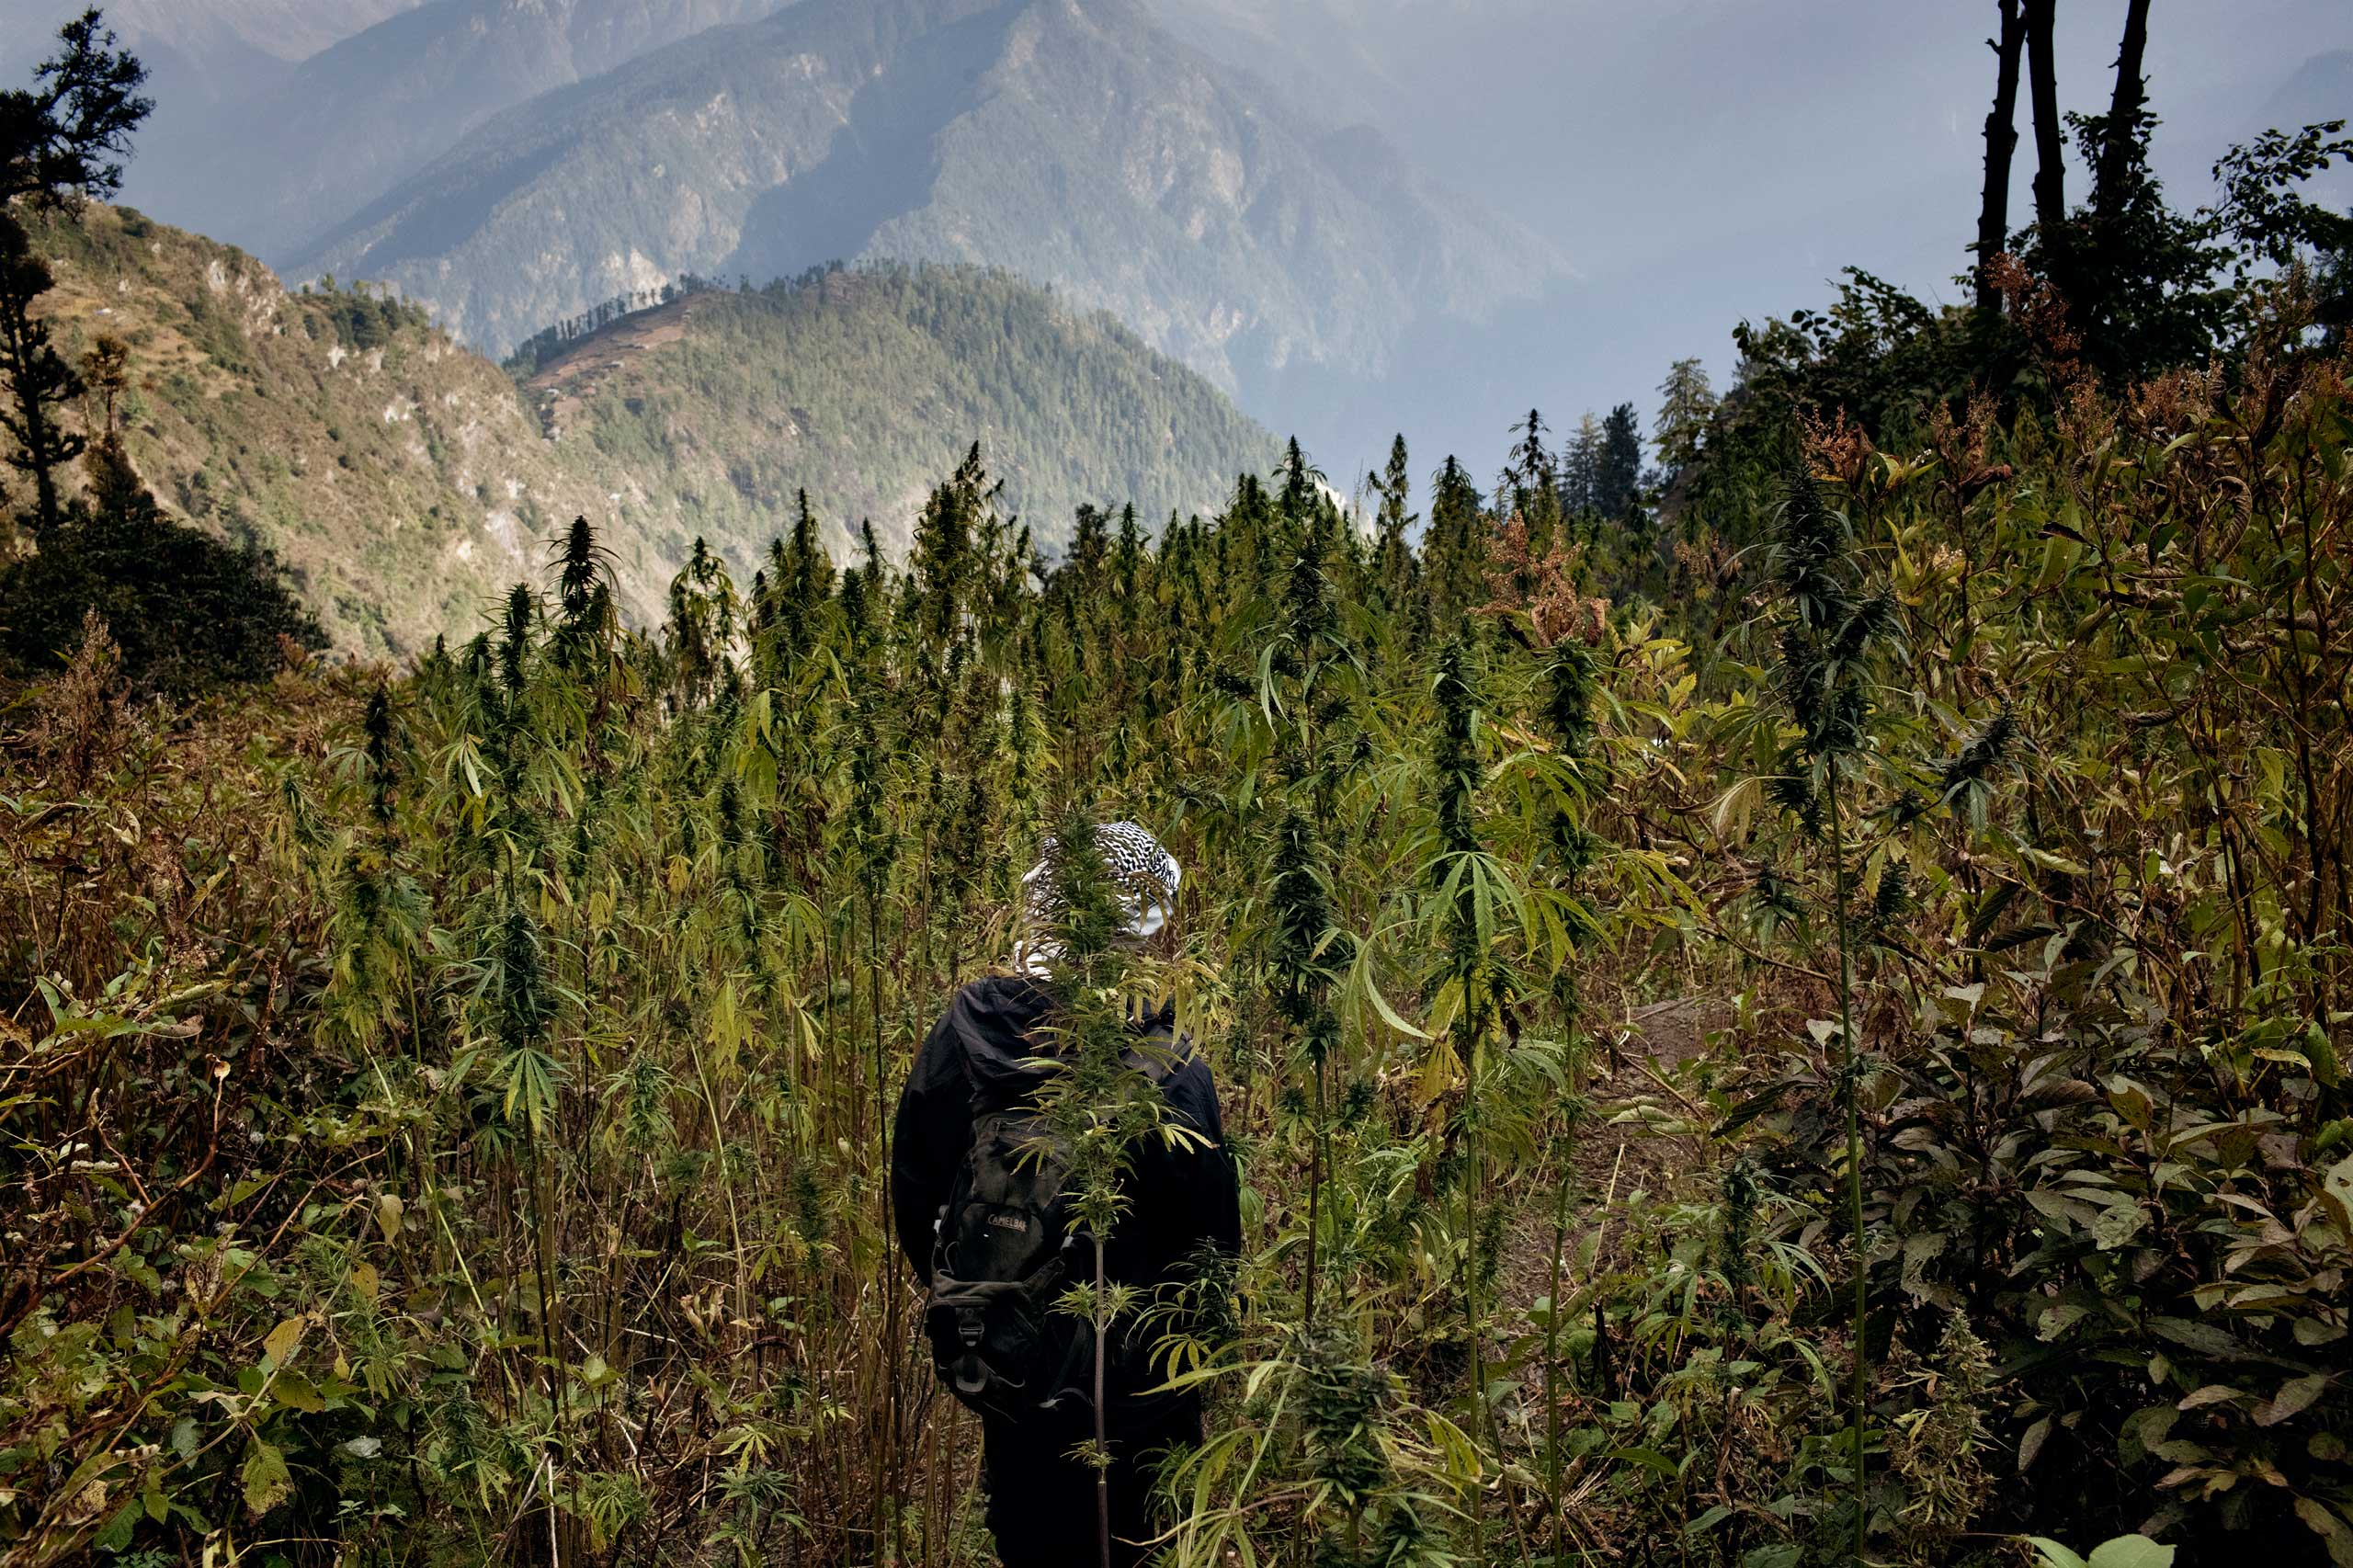 A villager walks through a cannabis field in Oct. 2013.